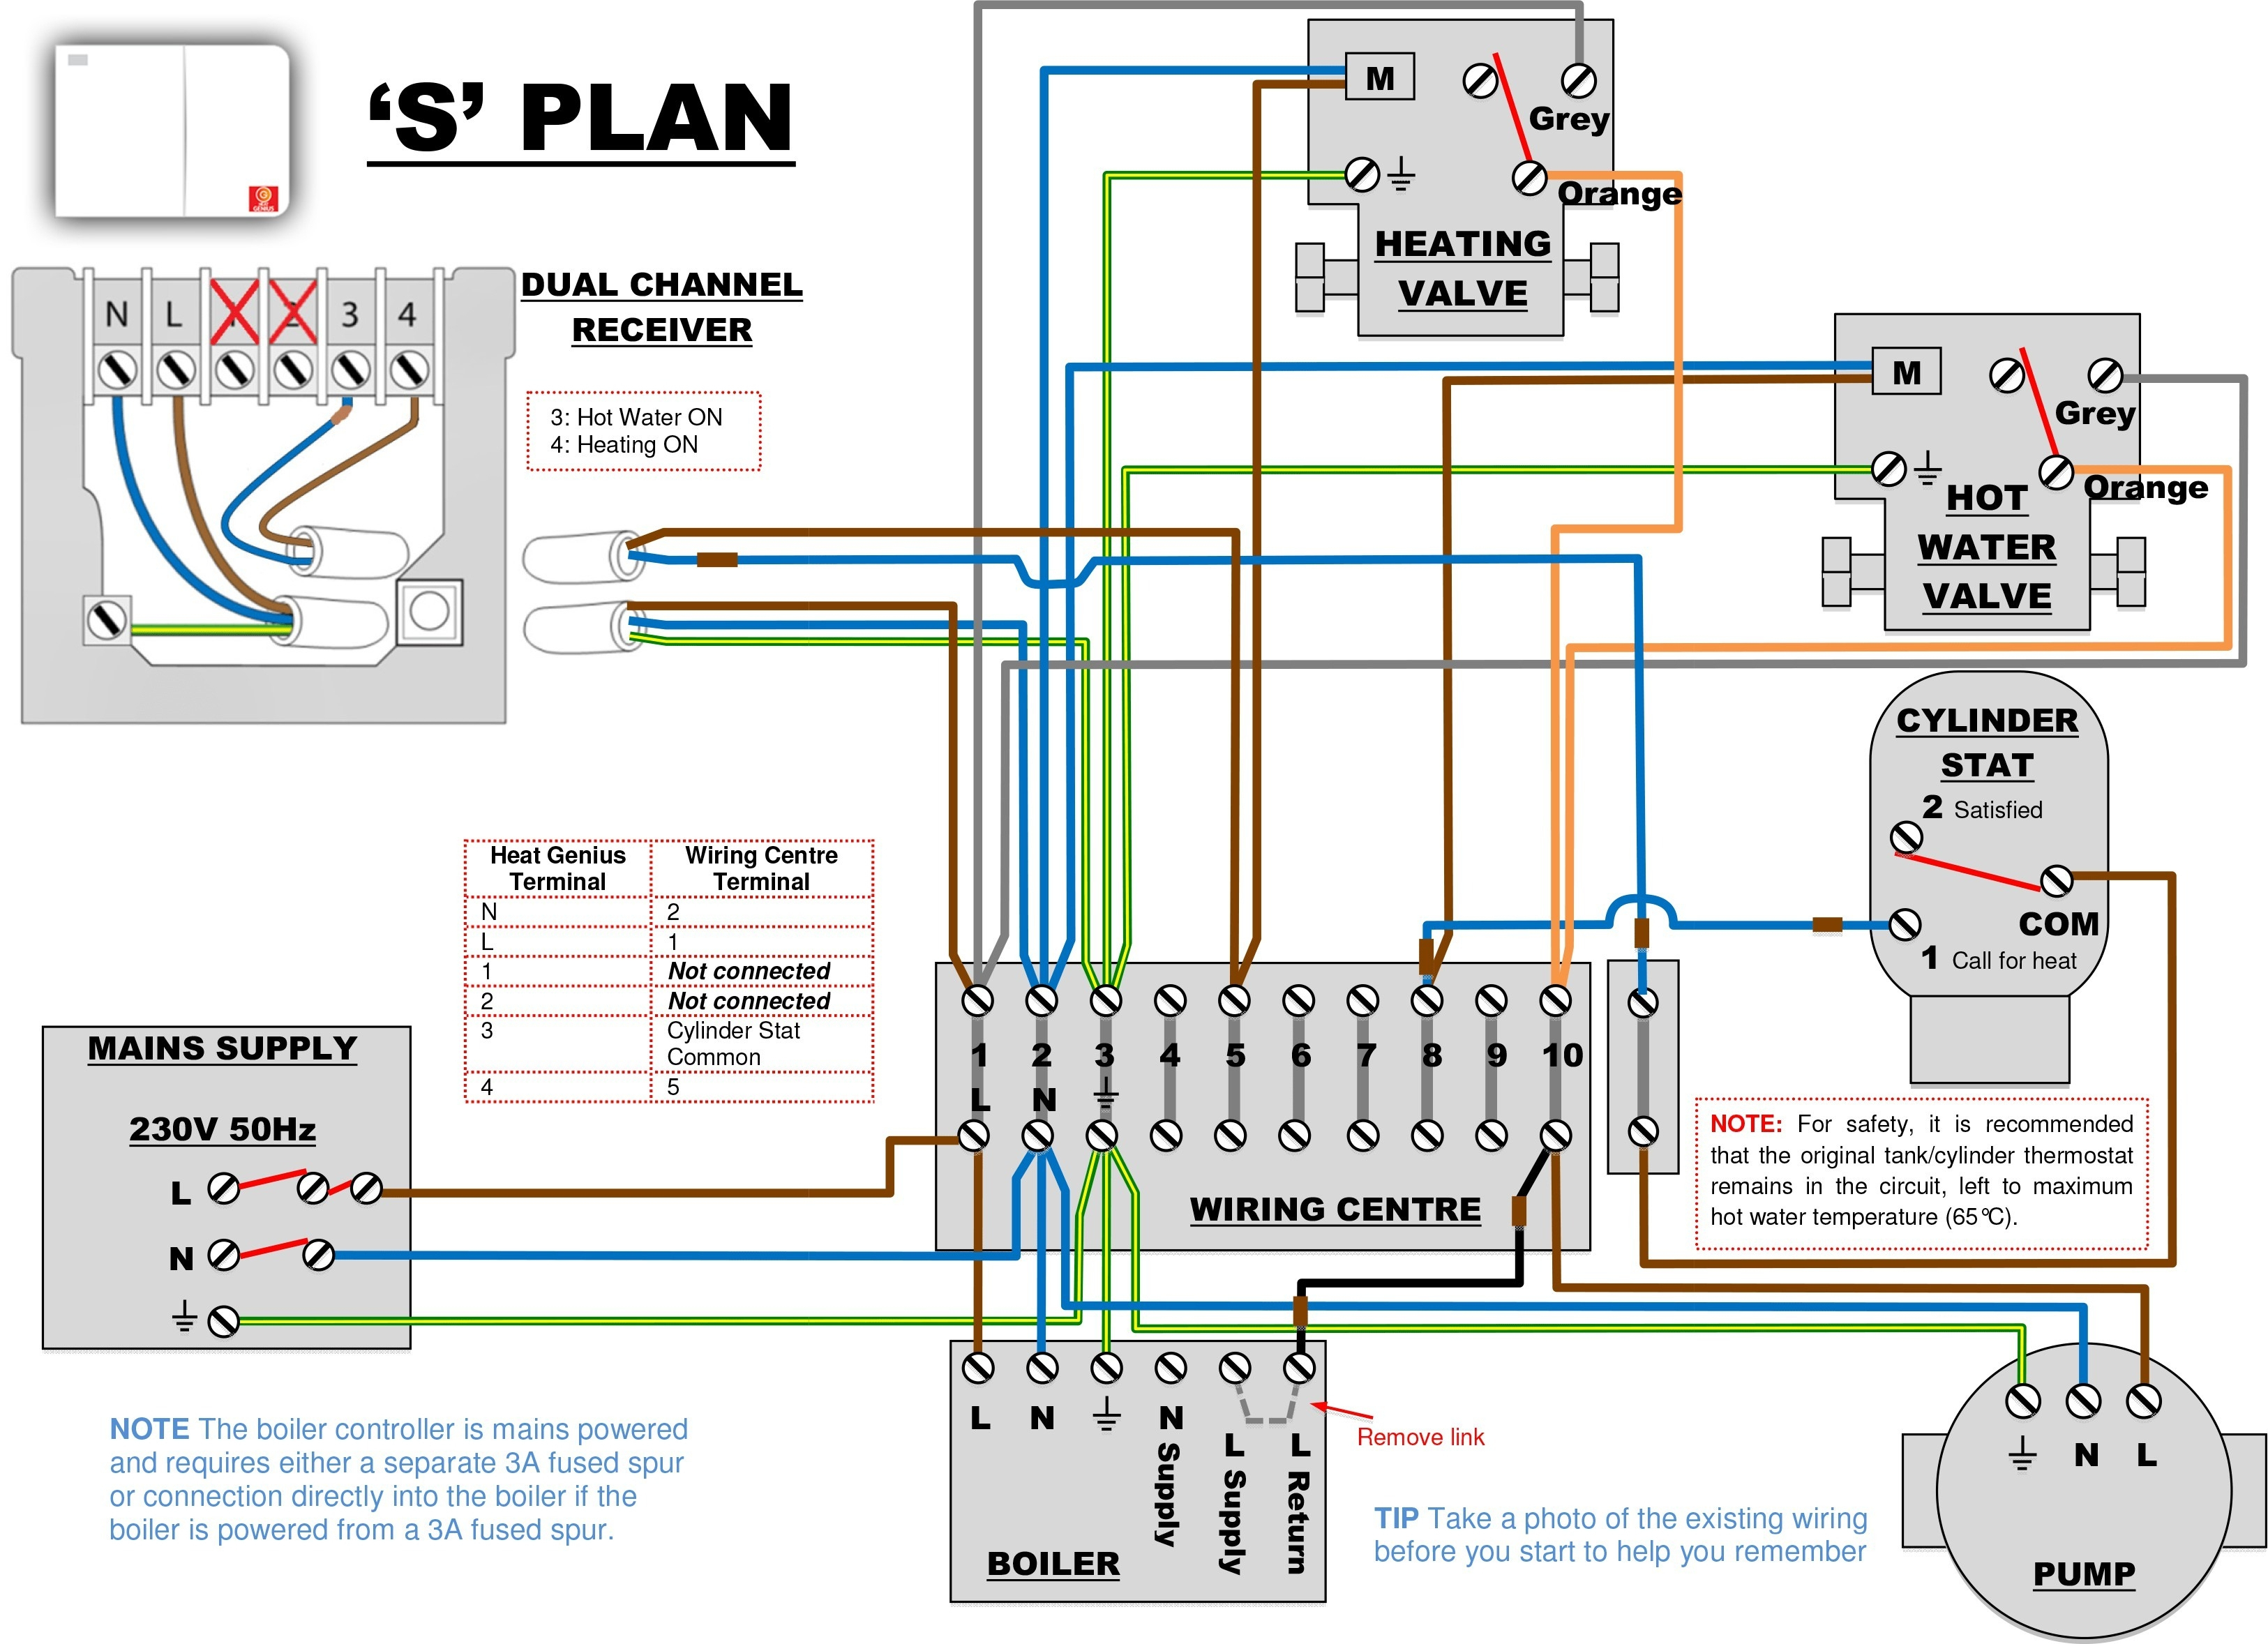 Nest Thermostat Wiring Diagram For Carrier Infinity - Wiring - Heat Pump With Nest Wiring Diagram